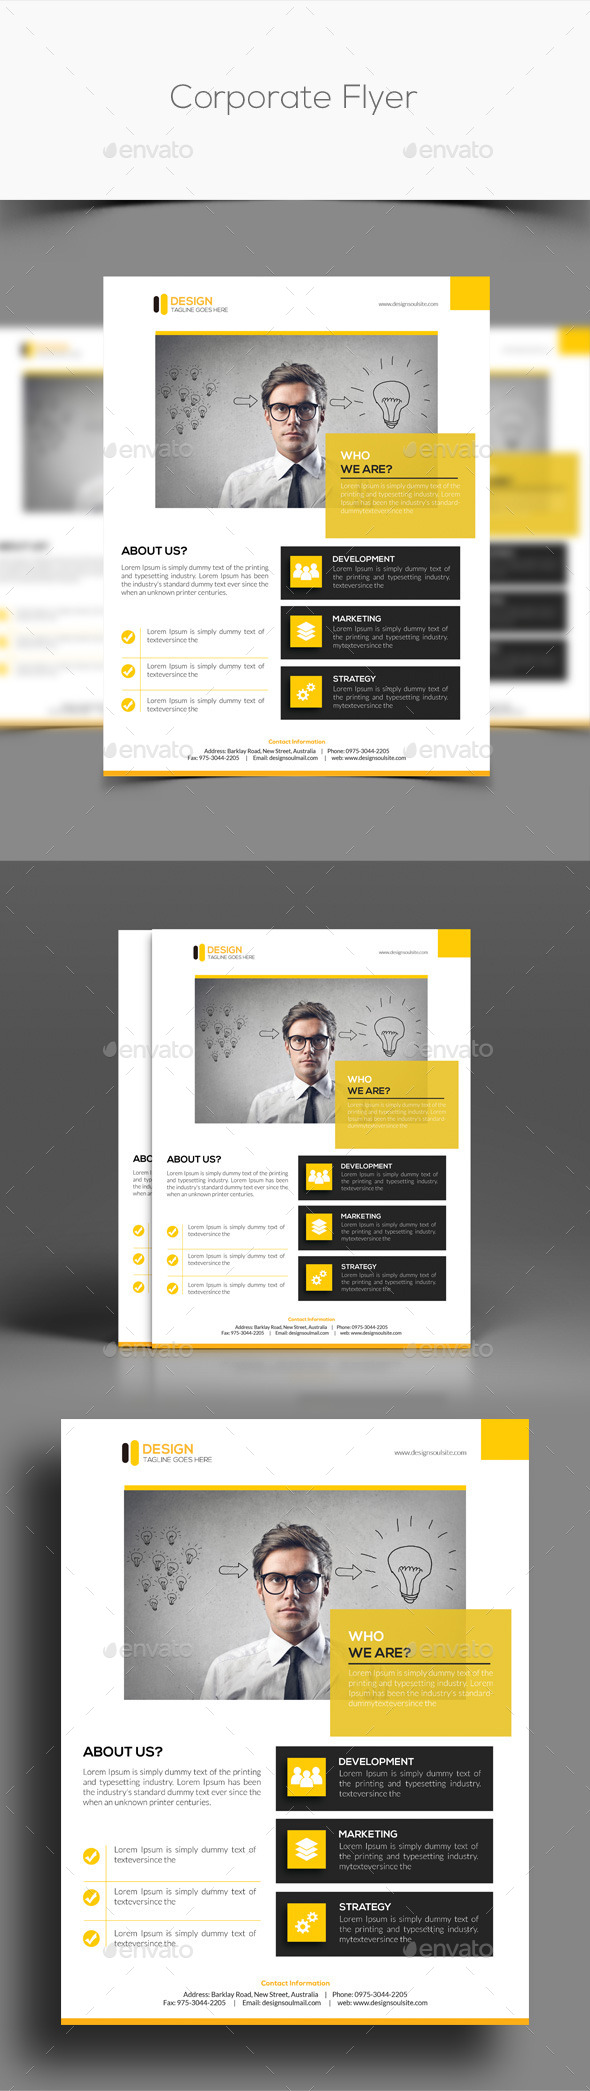 GraphicRiver Corporate Flyer 11127202